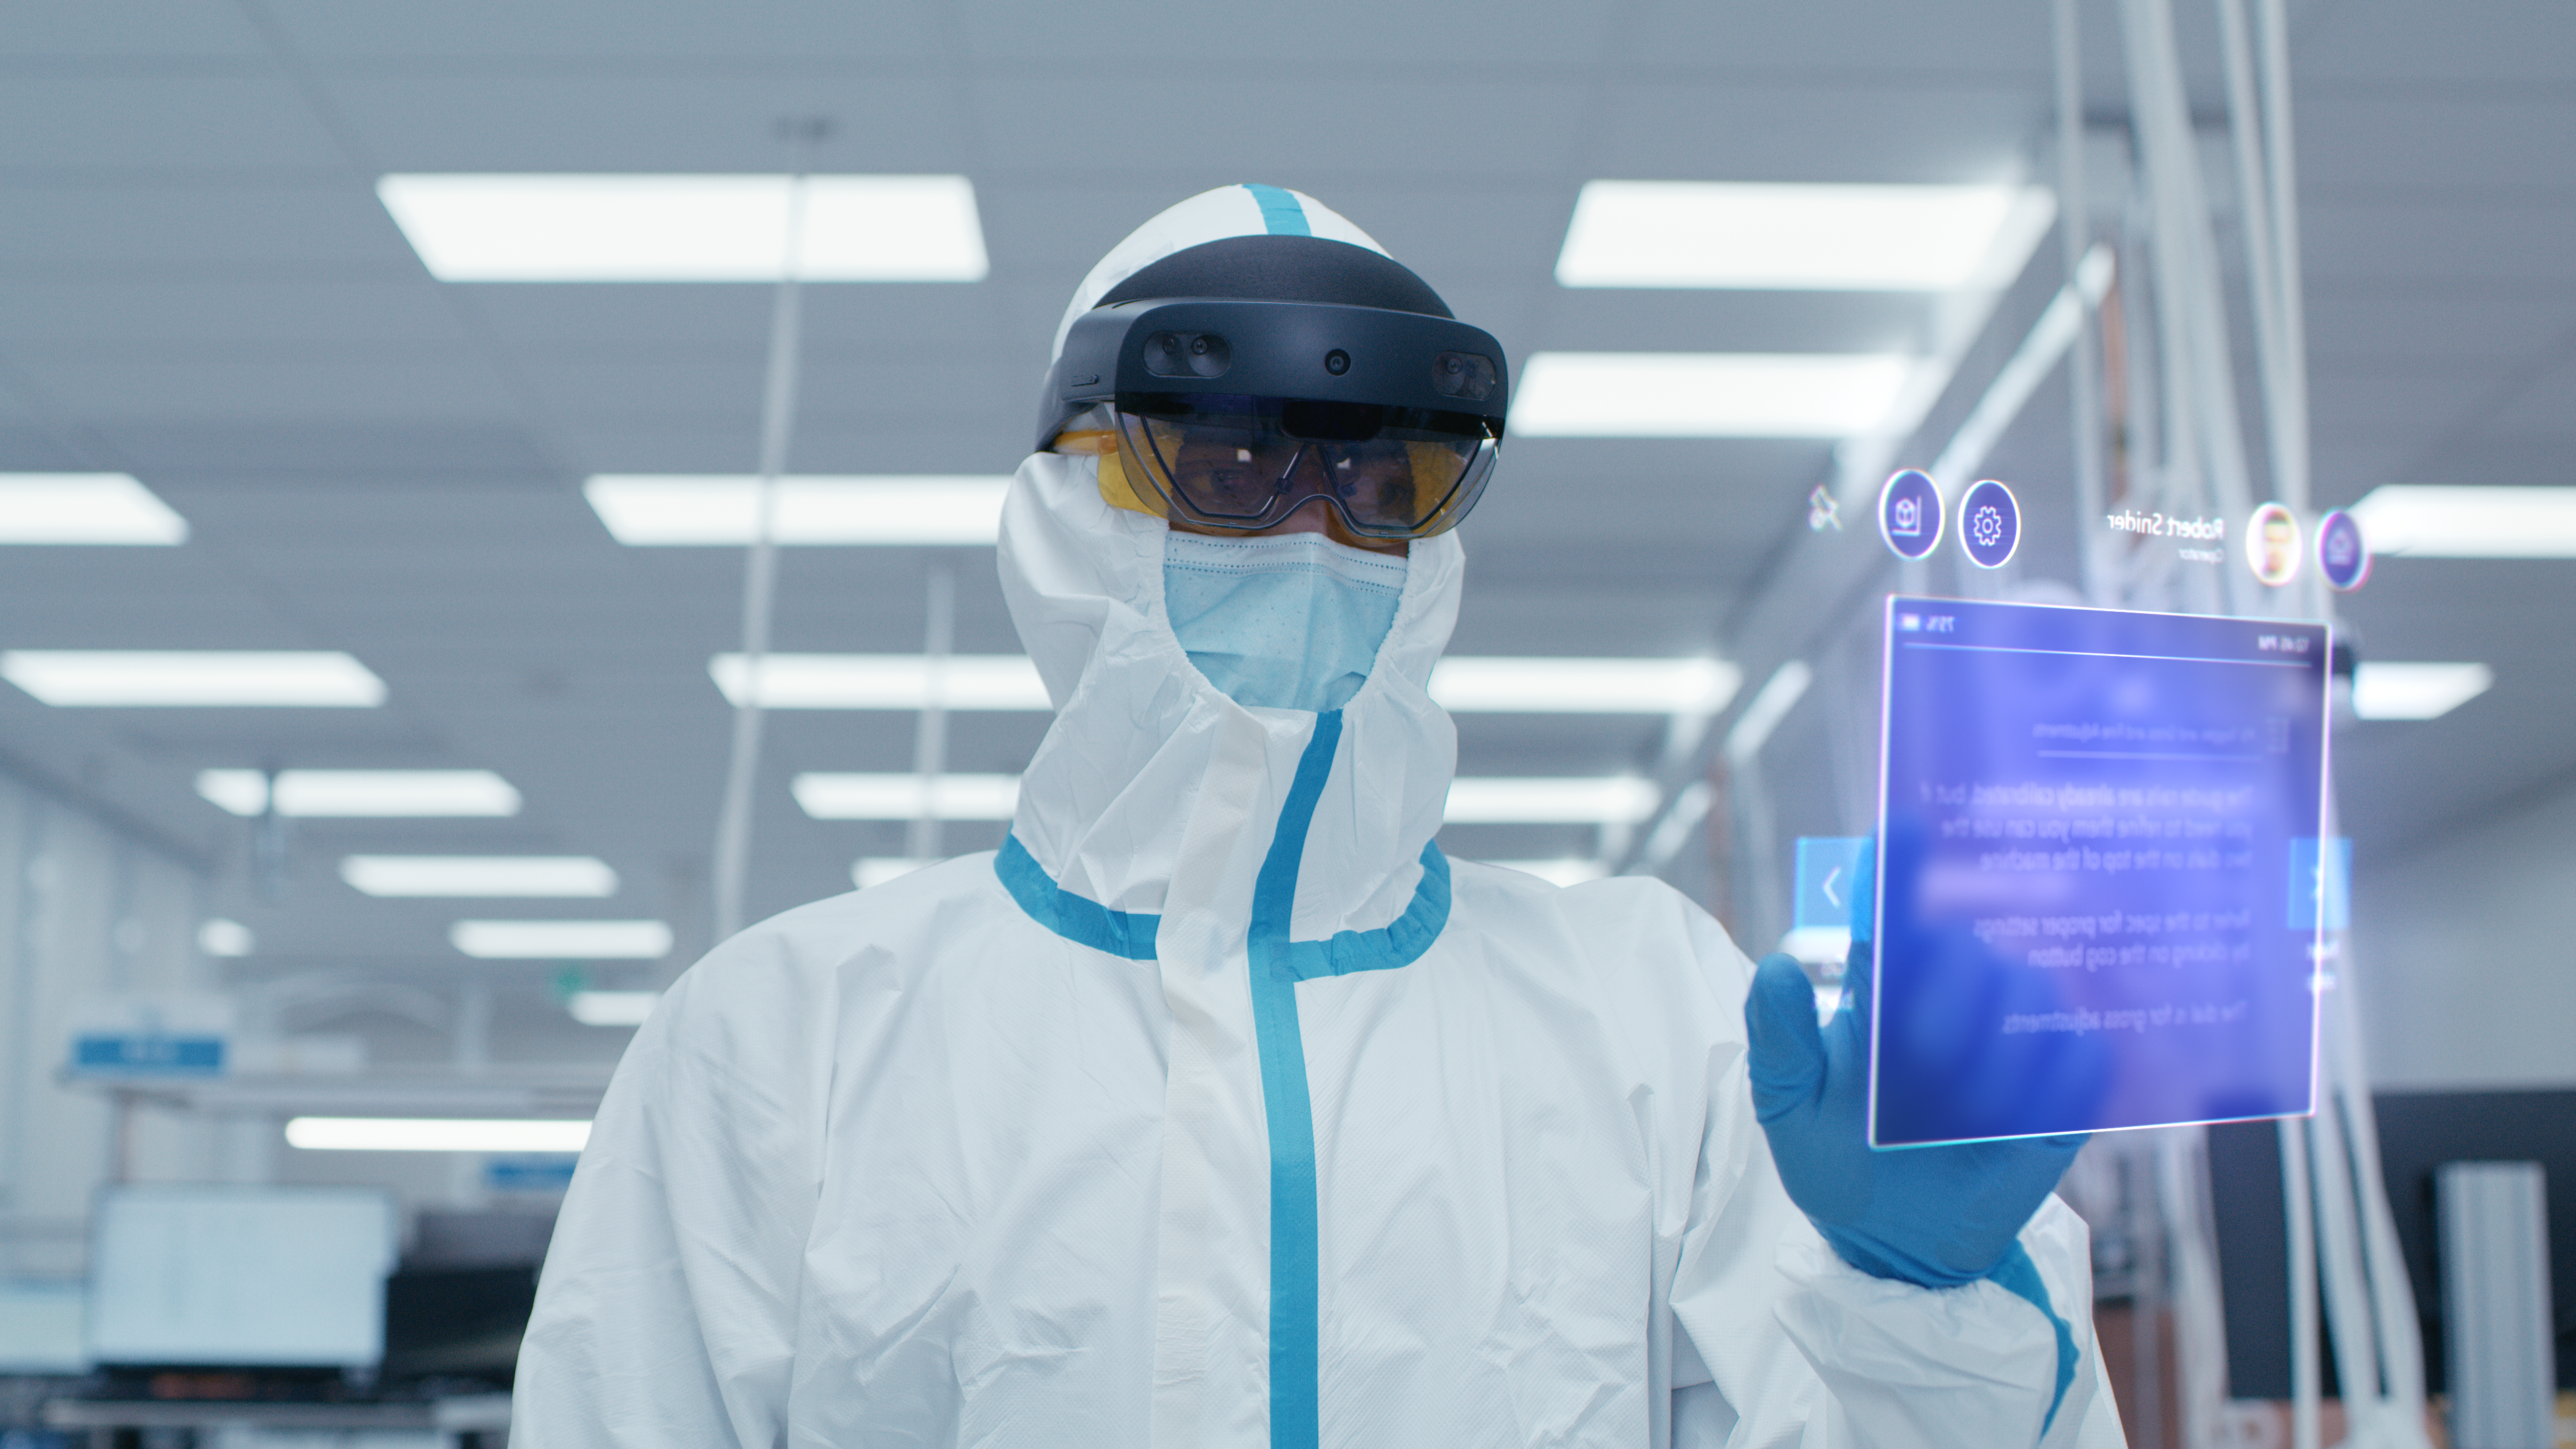 HoloLens 2 Industrial Edition in cleanroom